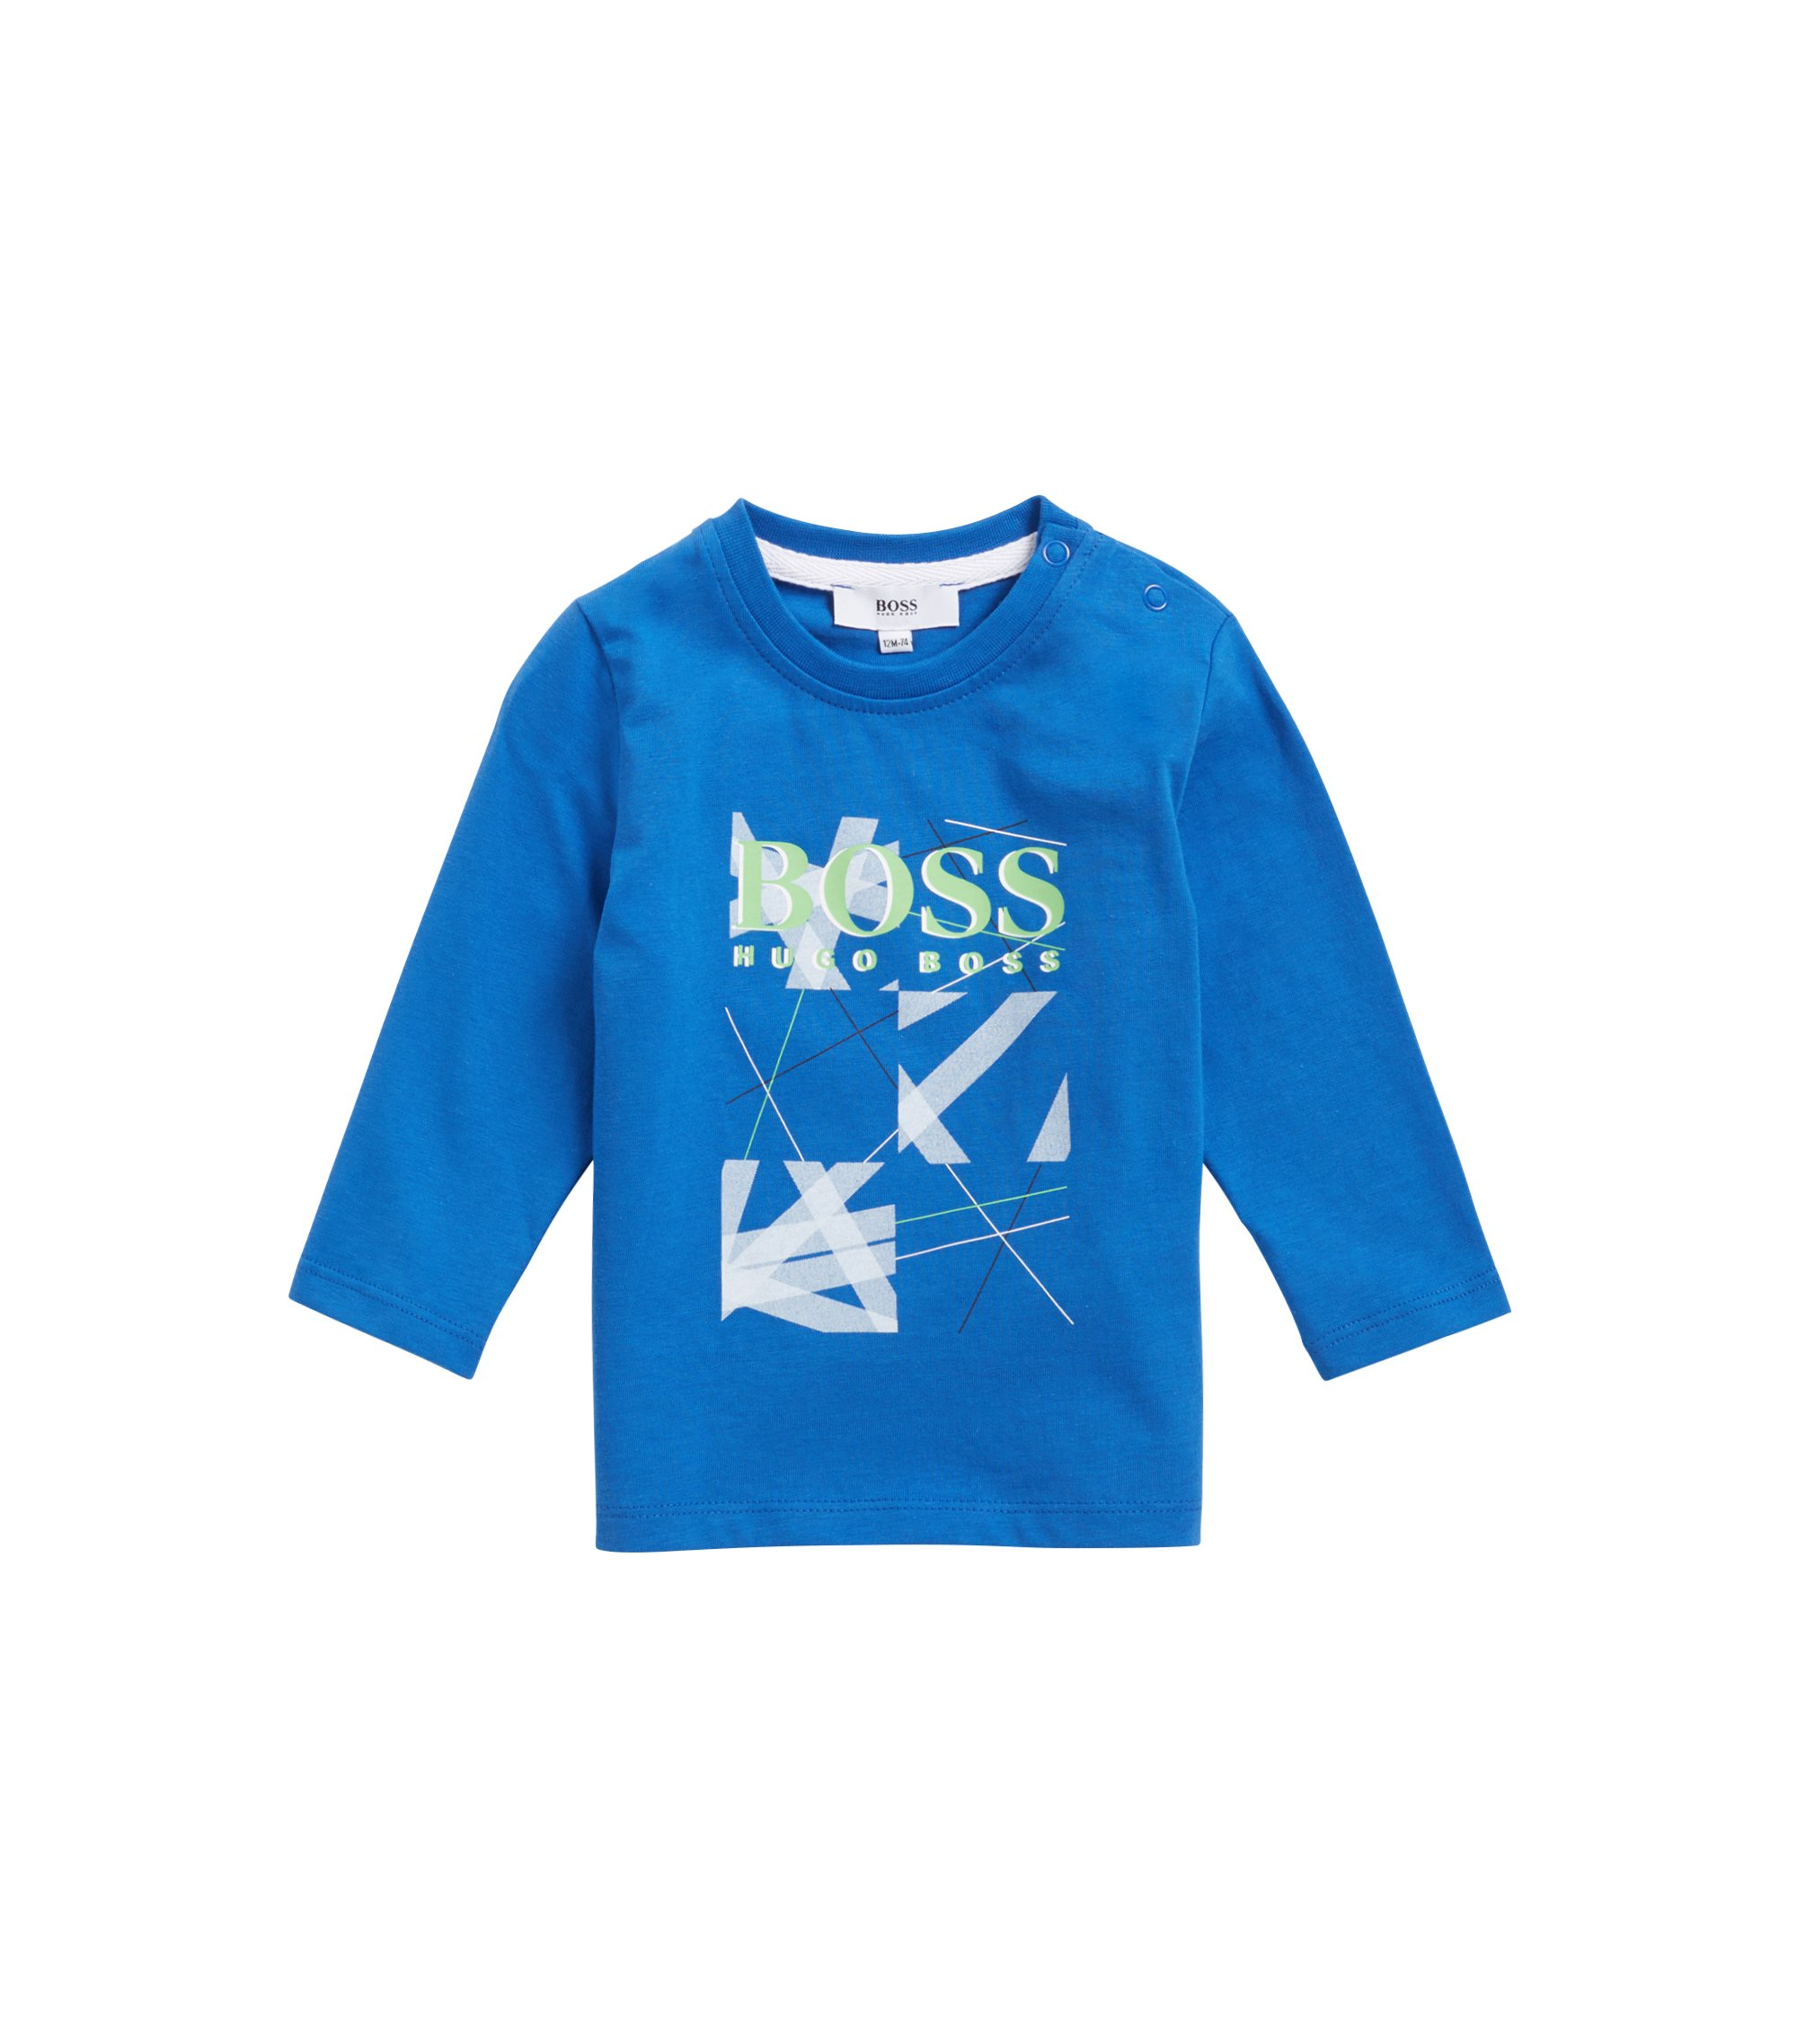 Kids' cotton jersey T-shirt with printed logo graphic, Blue